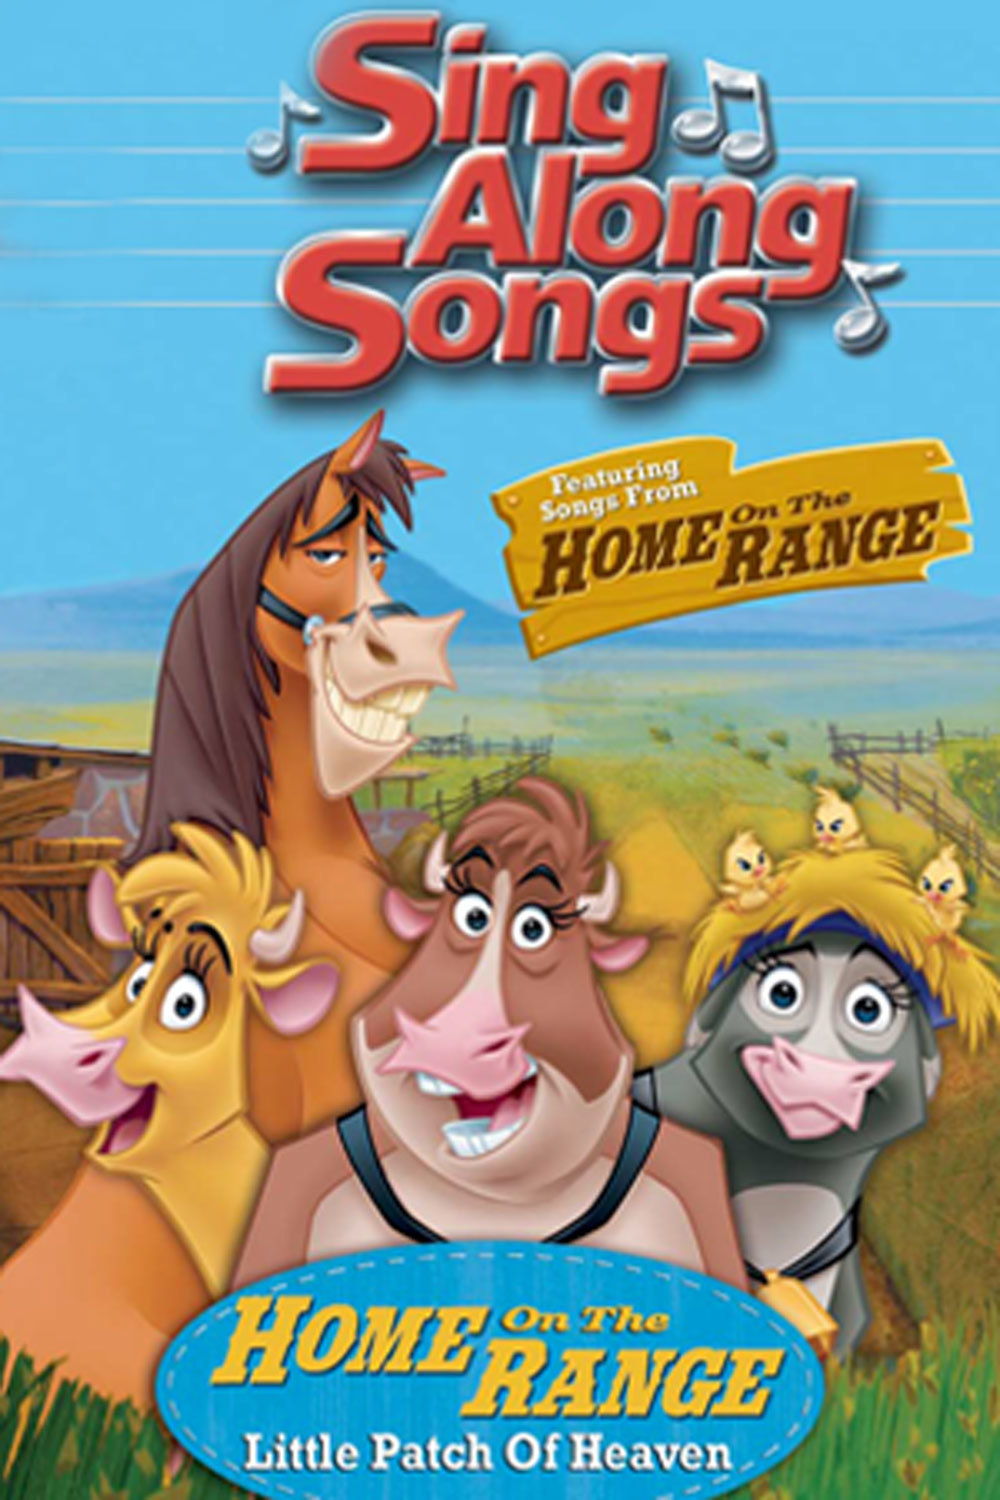 Disney Sing Along Songs: Home on the Range - Little Patch of Heaven